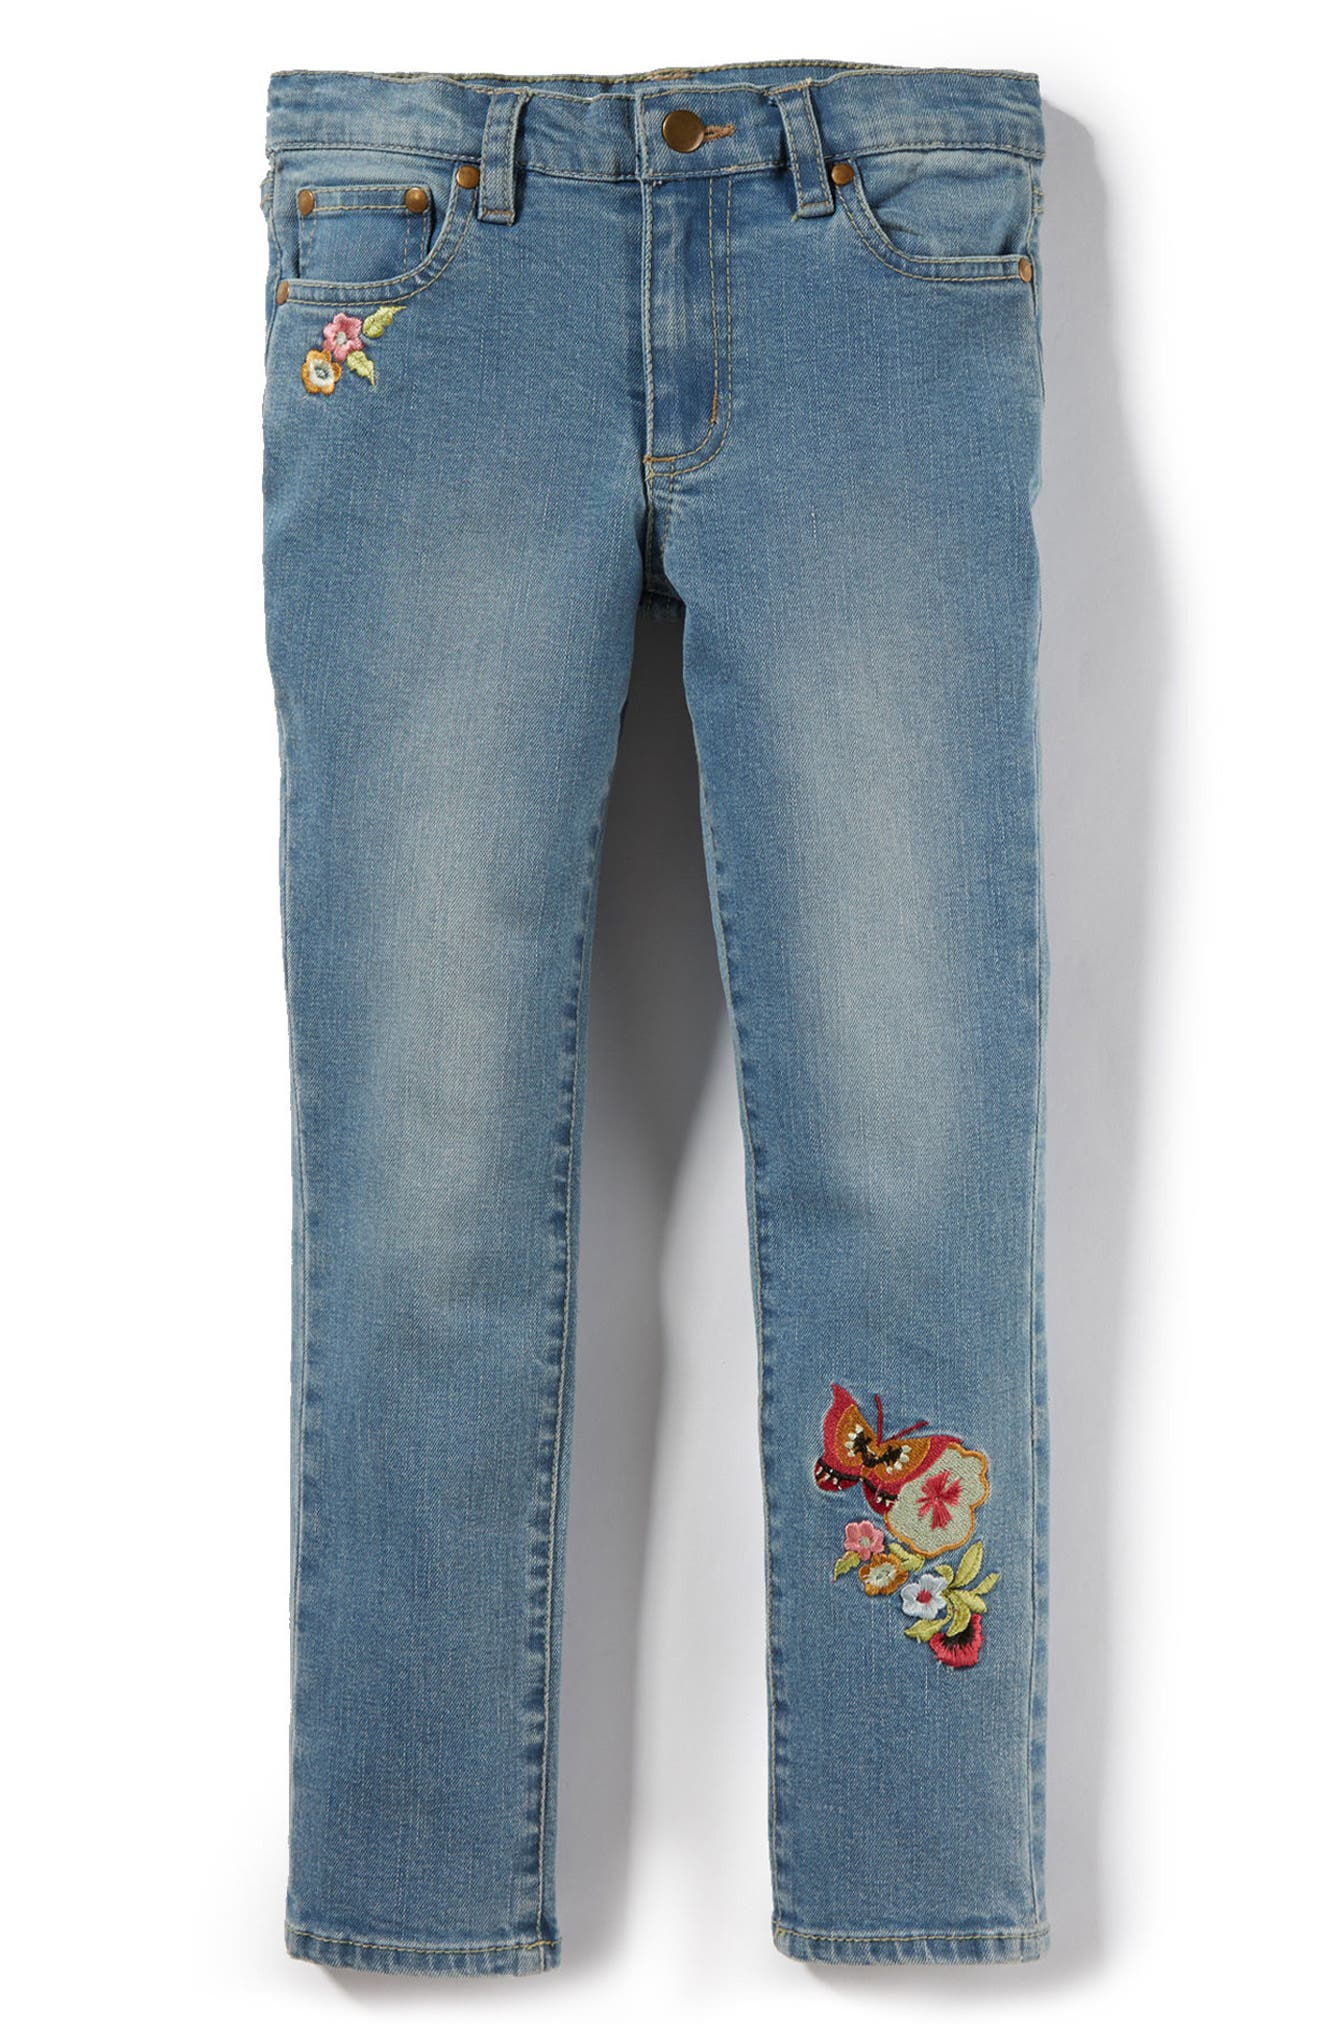 Taylor Embroidered Skinny Jeans,                             Main thumbnail 1, color,                             Medium Authentic